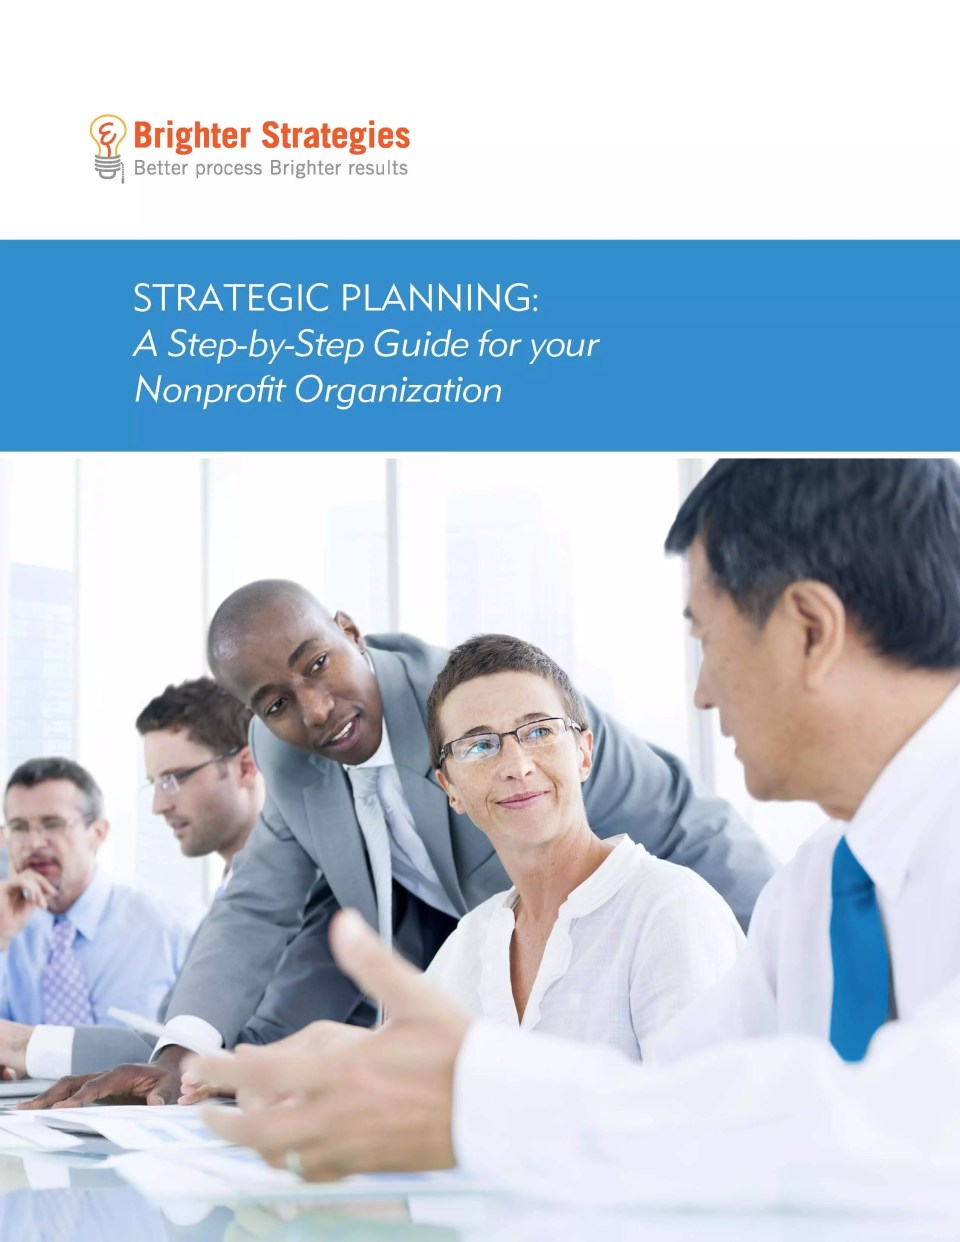 Strategic Planning: A Step-by-Step Guide for Your Nonprofit Organization eBook